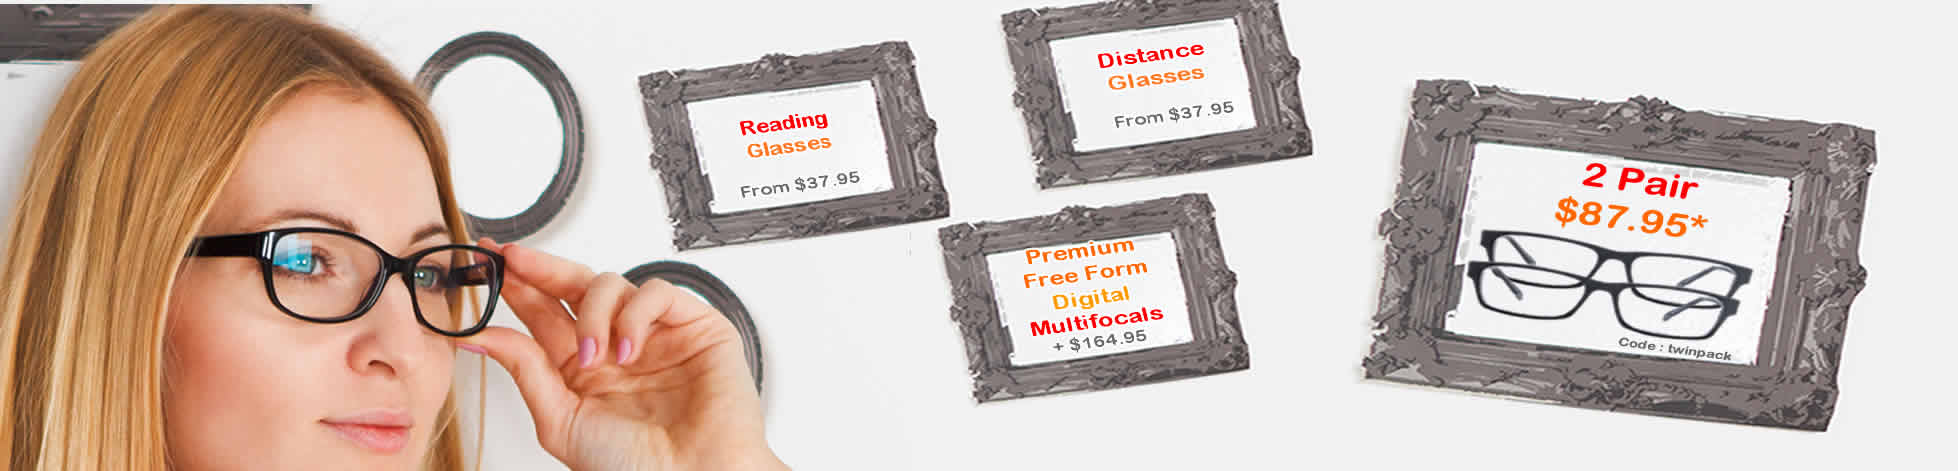 Please be assured that  AusSpecs is the best place to buy your spectacles online at the cheapest prices in Australia*